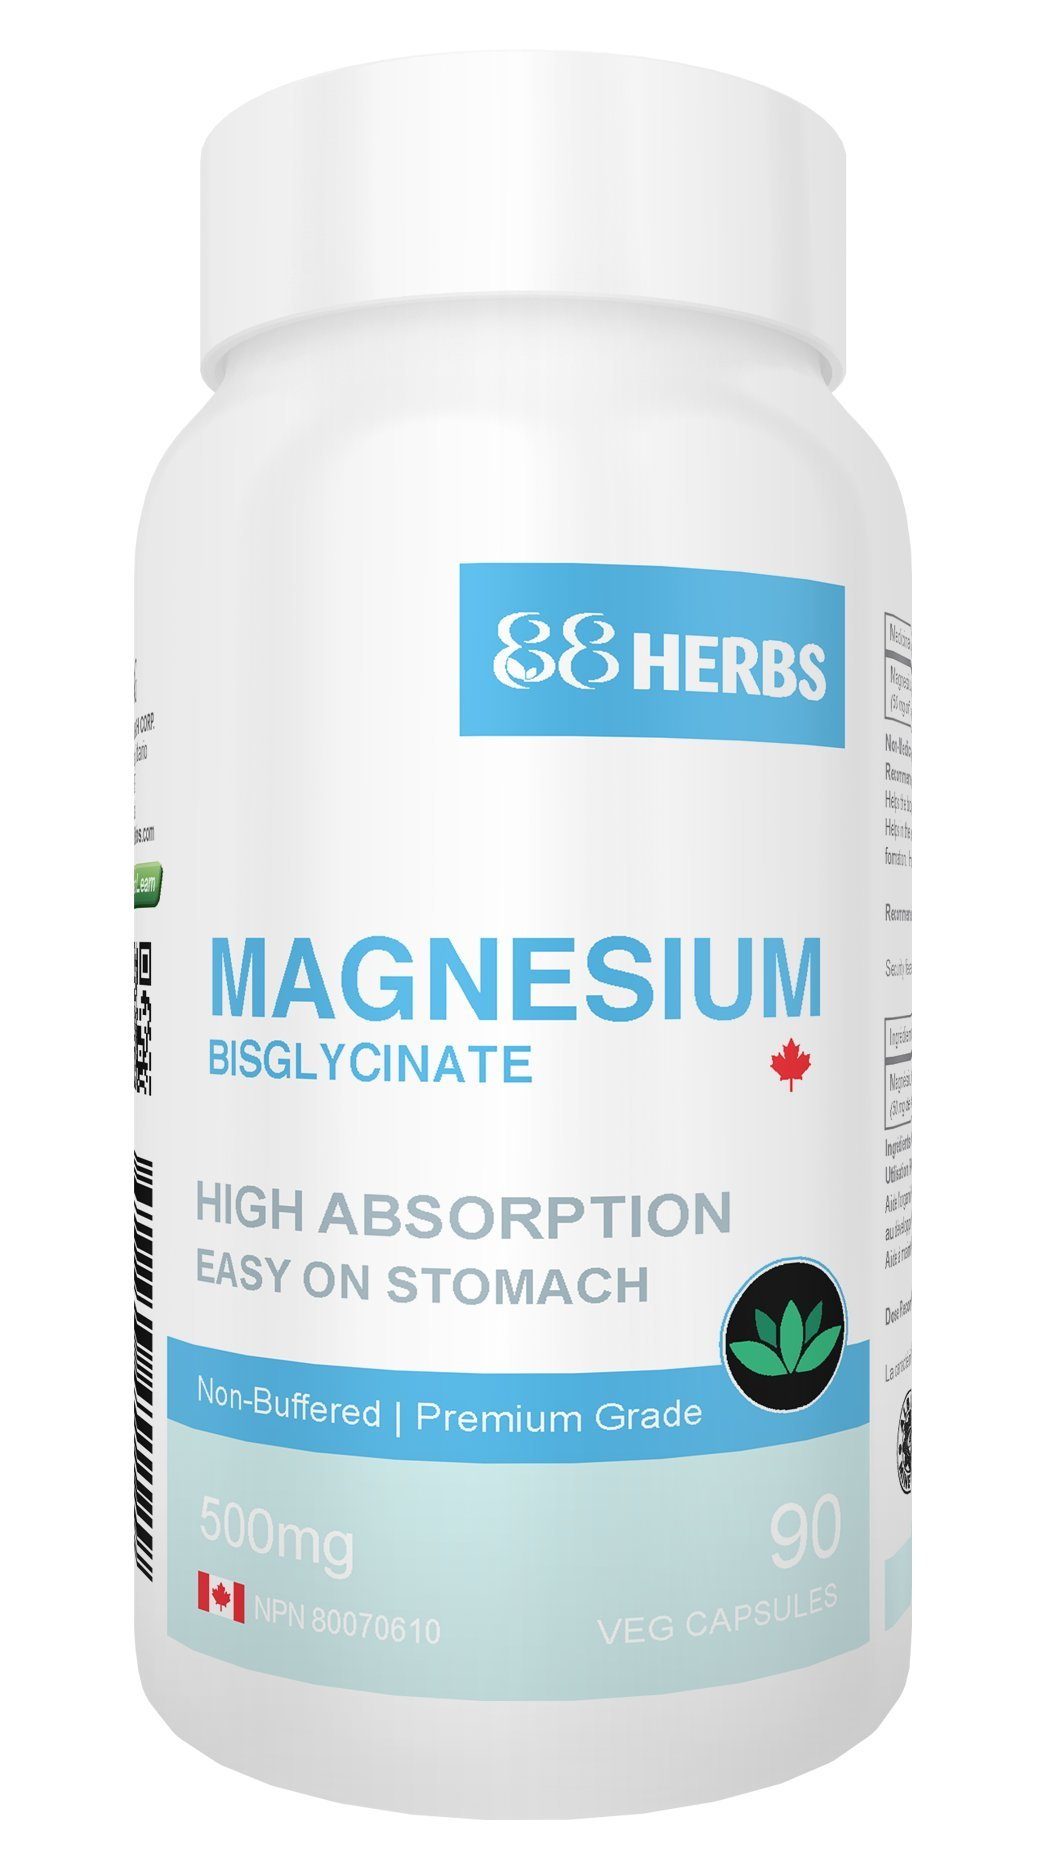 Magnesium Bisglycinate – Highest Absorption – Premium Grade – No Fillers – Non Buffered – 90 Veg Caps – 500mg Magnesium Bisglycinate per cap (50mg Elemental Magnesium)